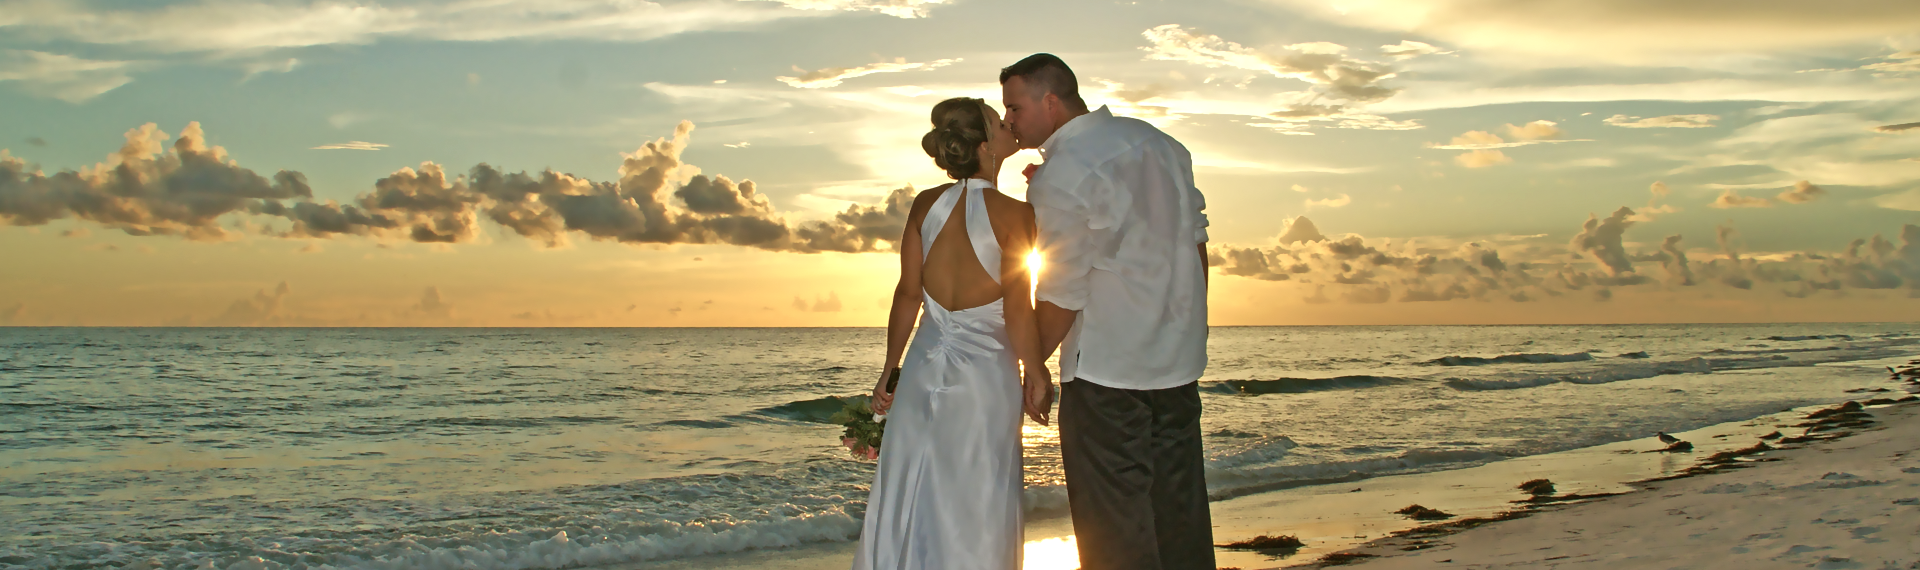 Sarasota Beach weddings by Lortz